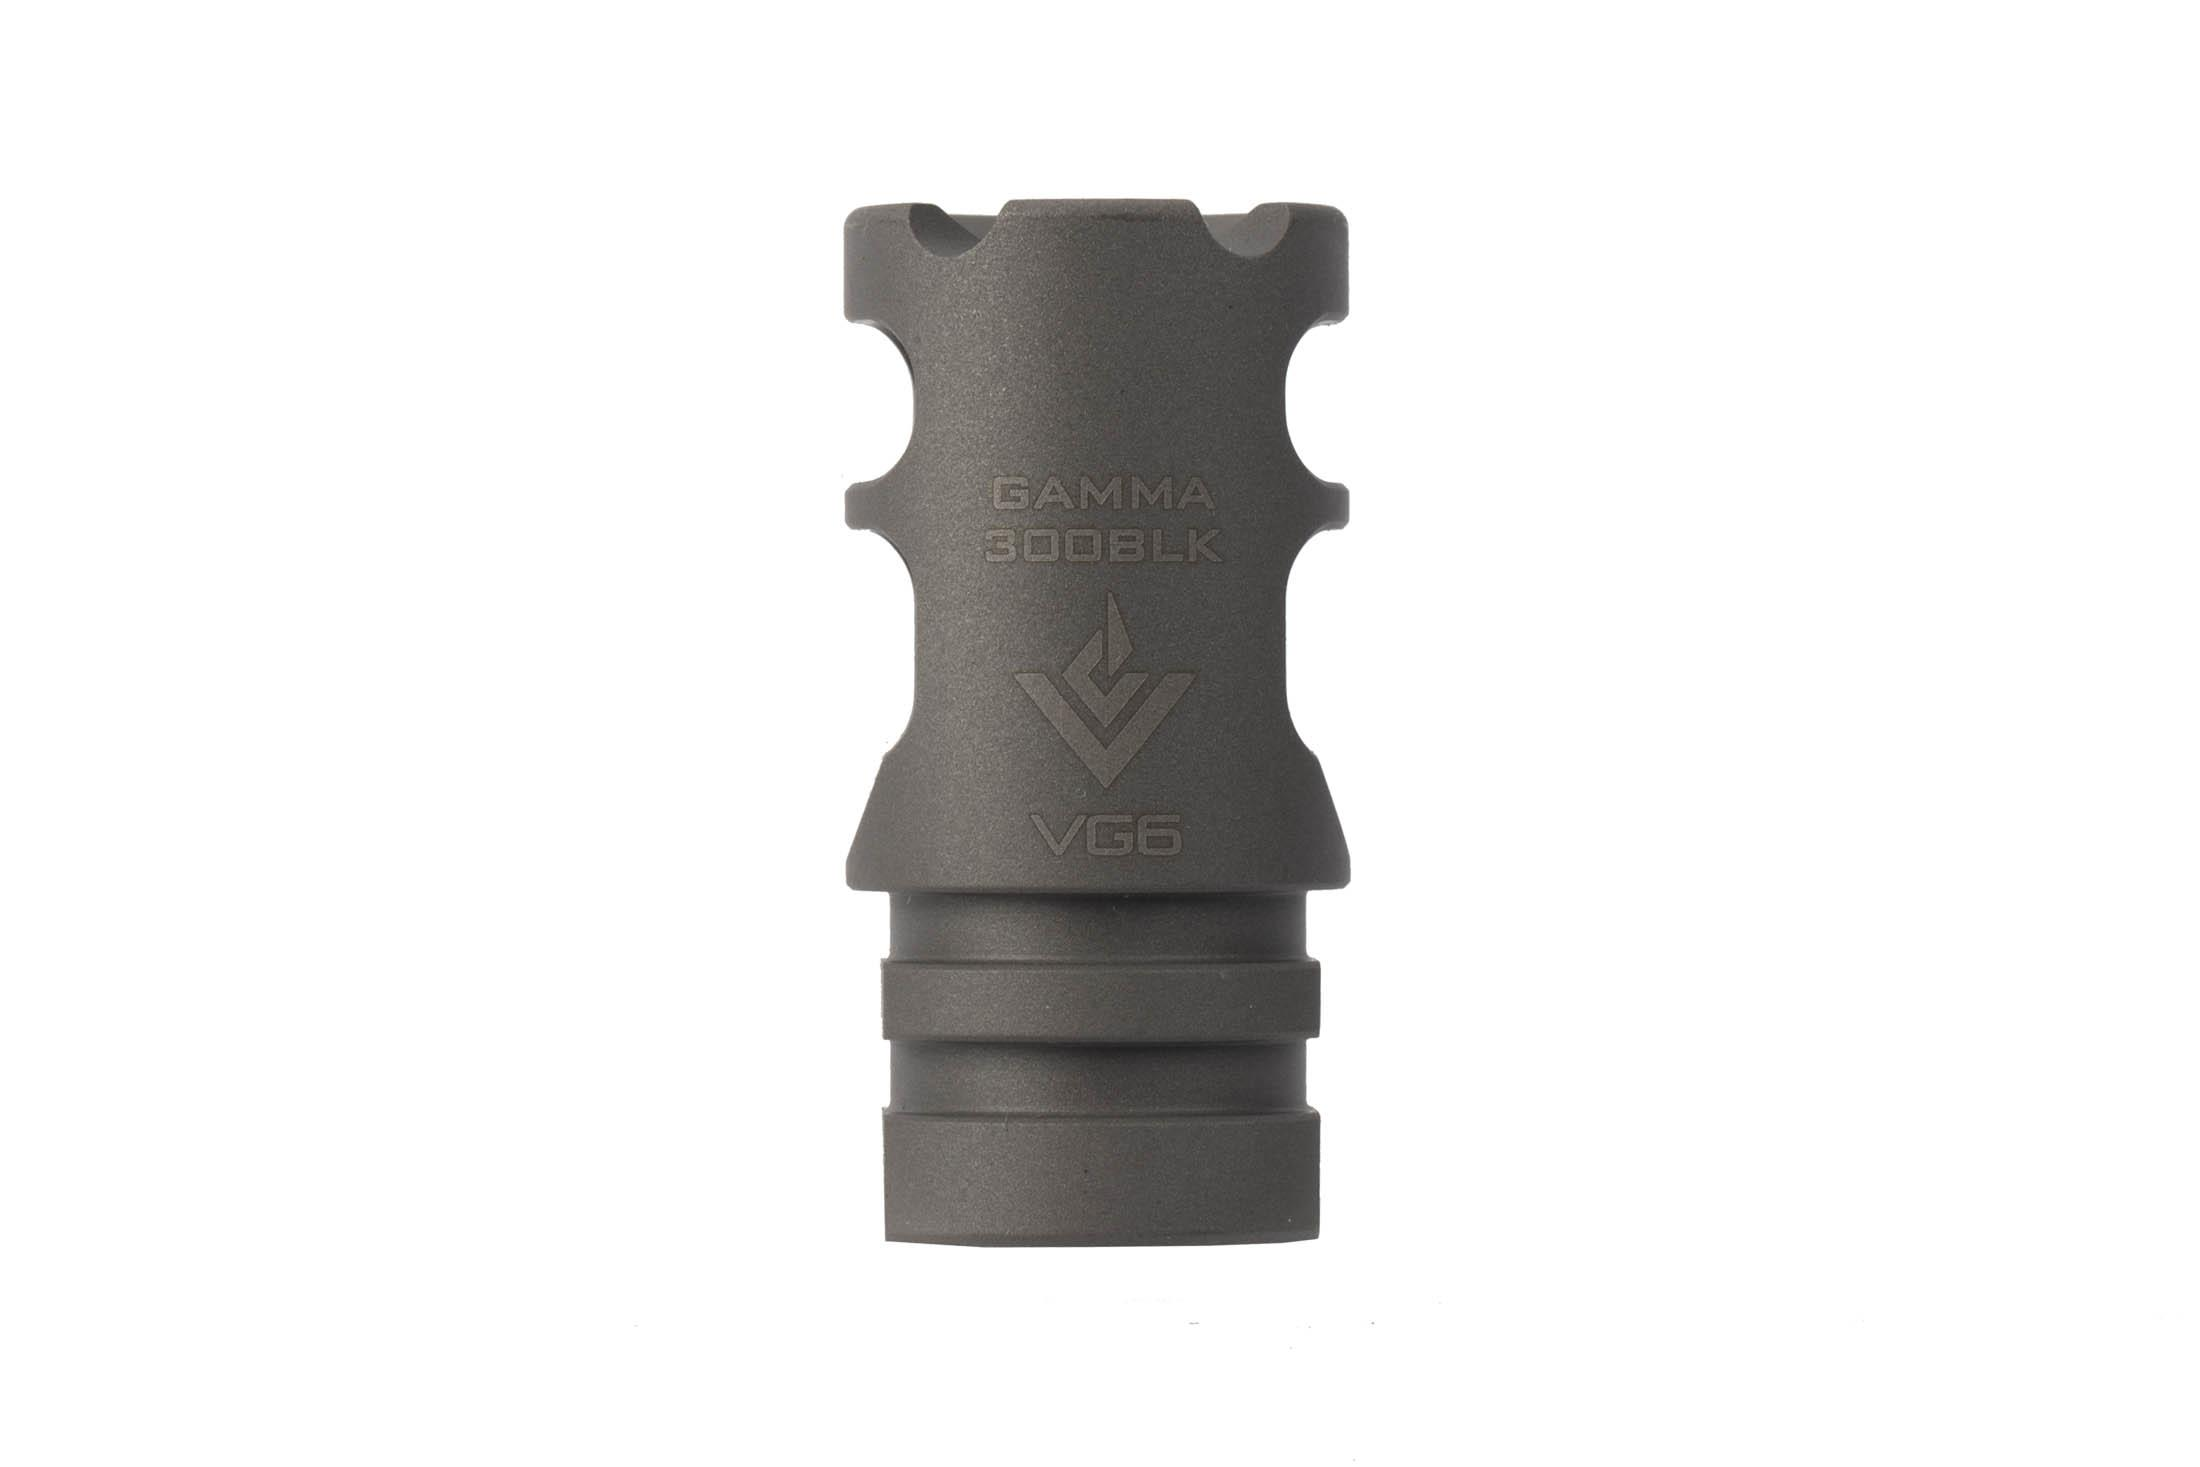 The VG6 Precision Gamma 300BLK High Performance Muzzle Brake is 1.72 inches in length